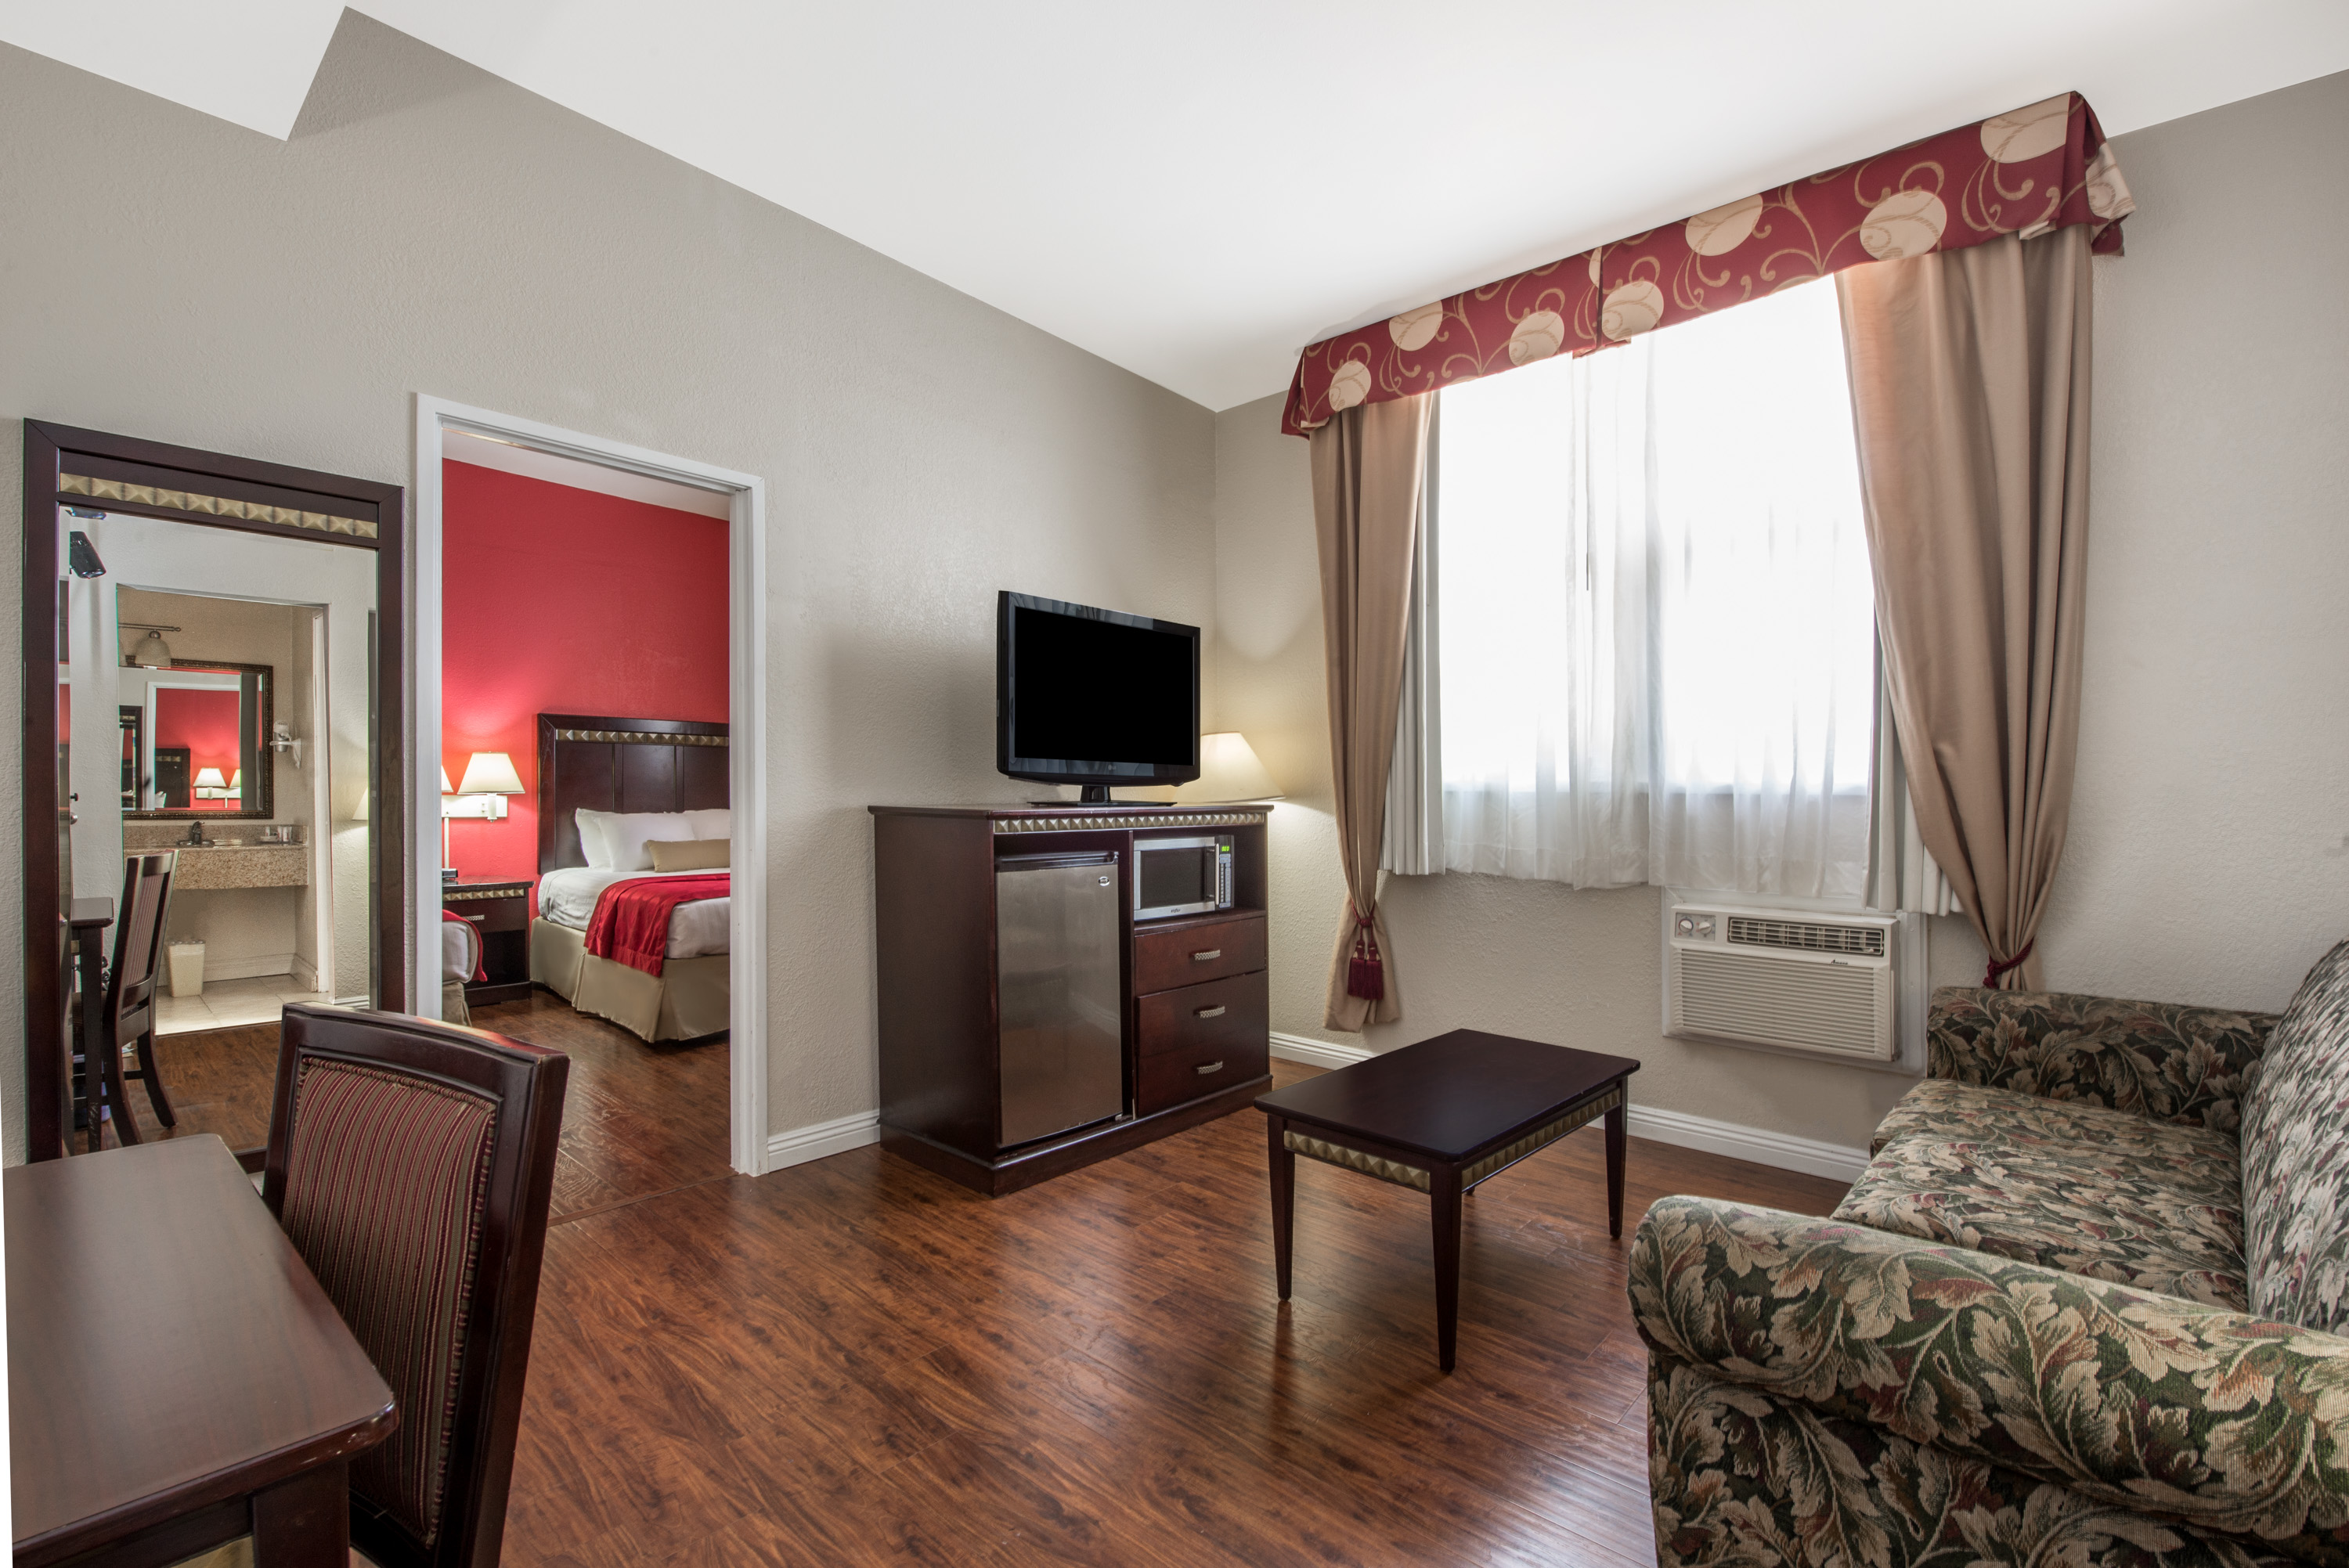 Ramada San Diego Airport - Suites are available at Ramada San Diego Airport